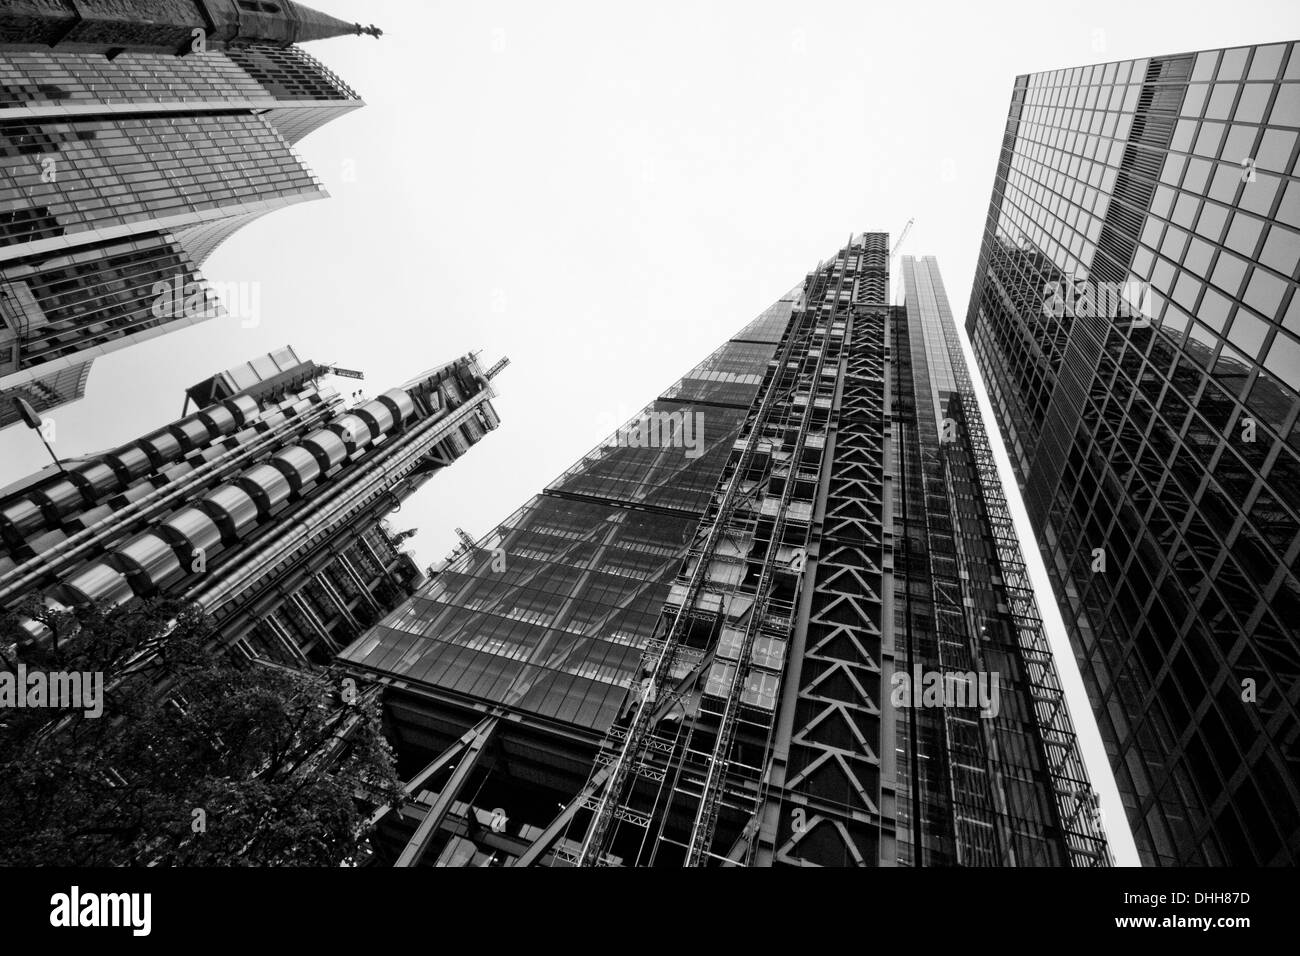 LONDON - SEPTEMBER 21: Leadenhall Building in construction center with Lloyds Building, Willis Building and St Helens - Stock Image